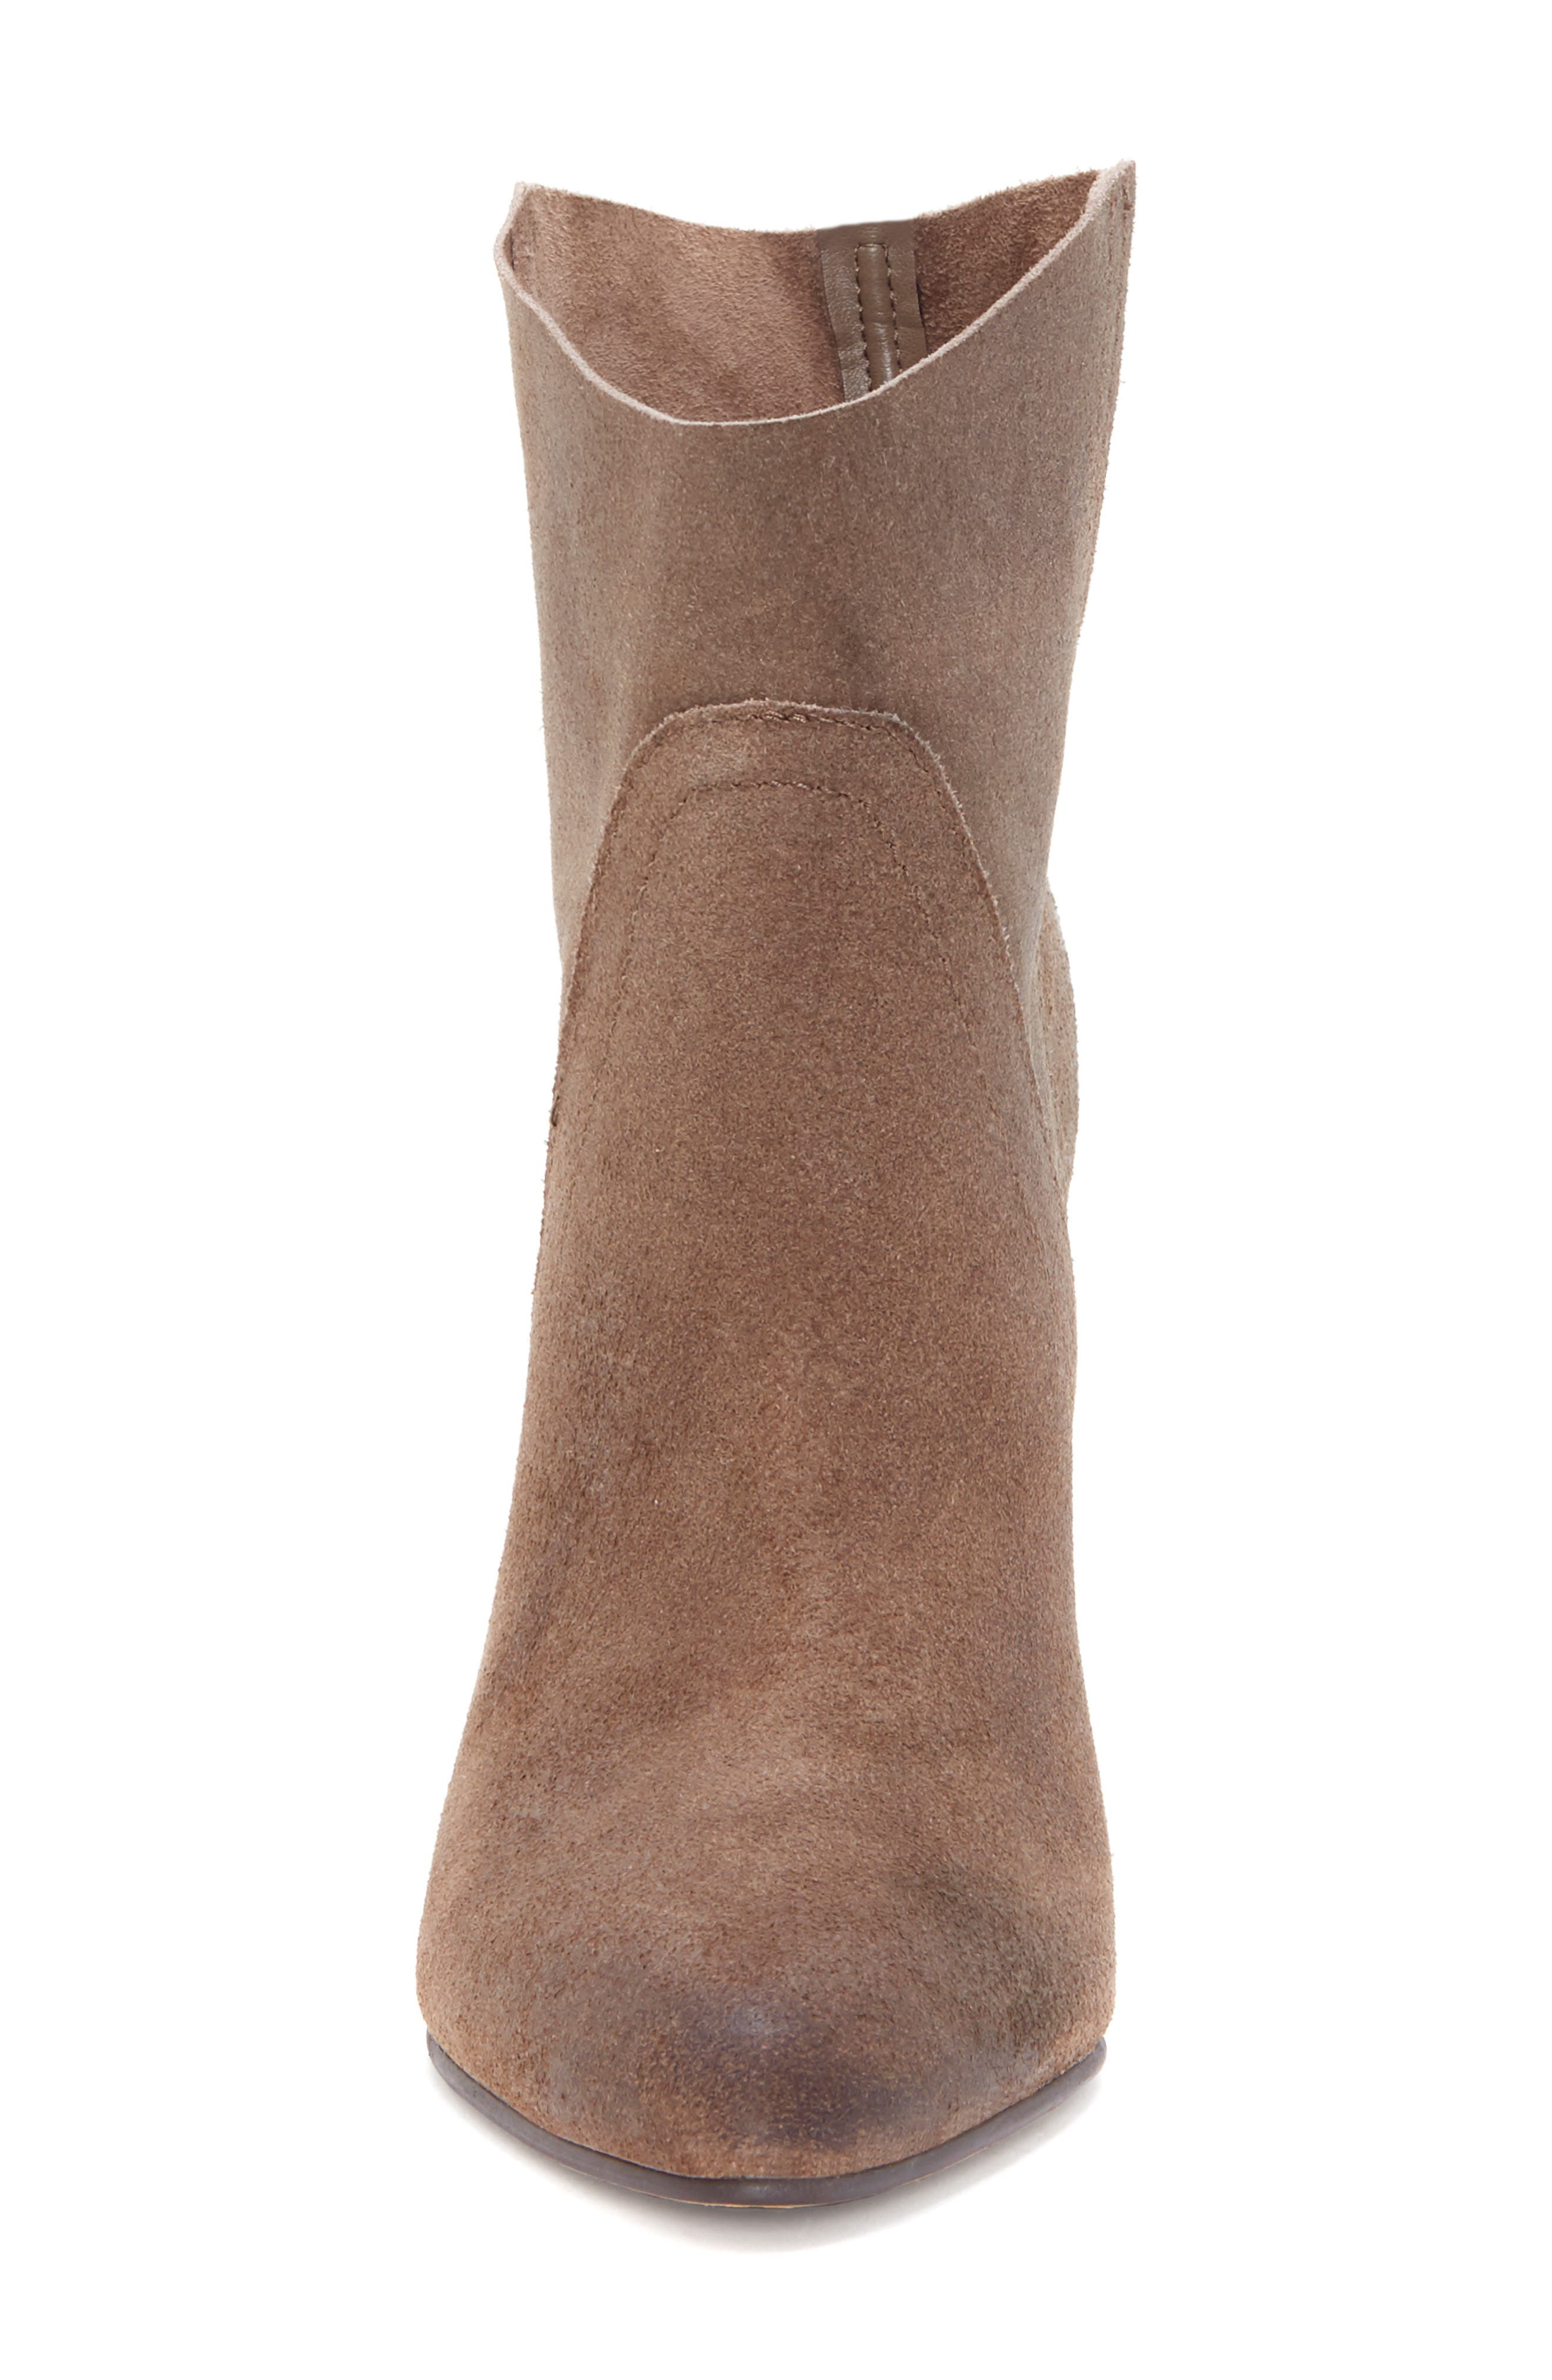 VINCE CAMUTO, Creestal Western Bootie, Alternate thumbnail 4, color, BEDROCK LEATHER